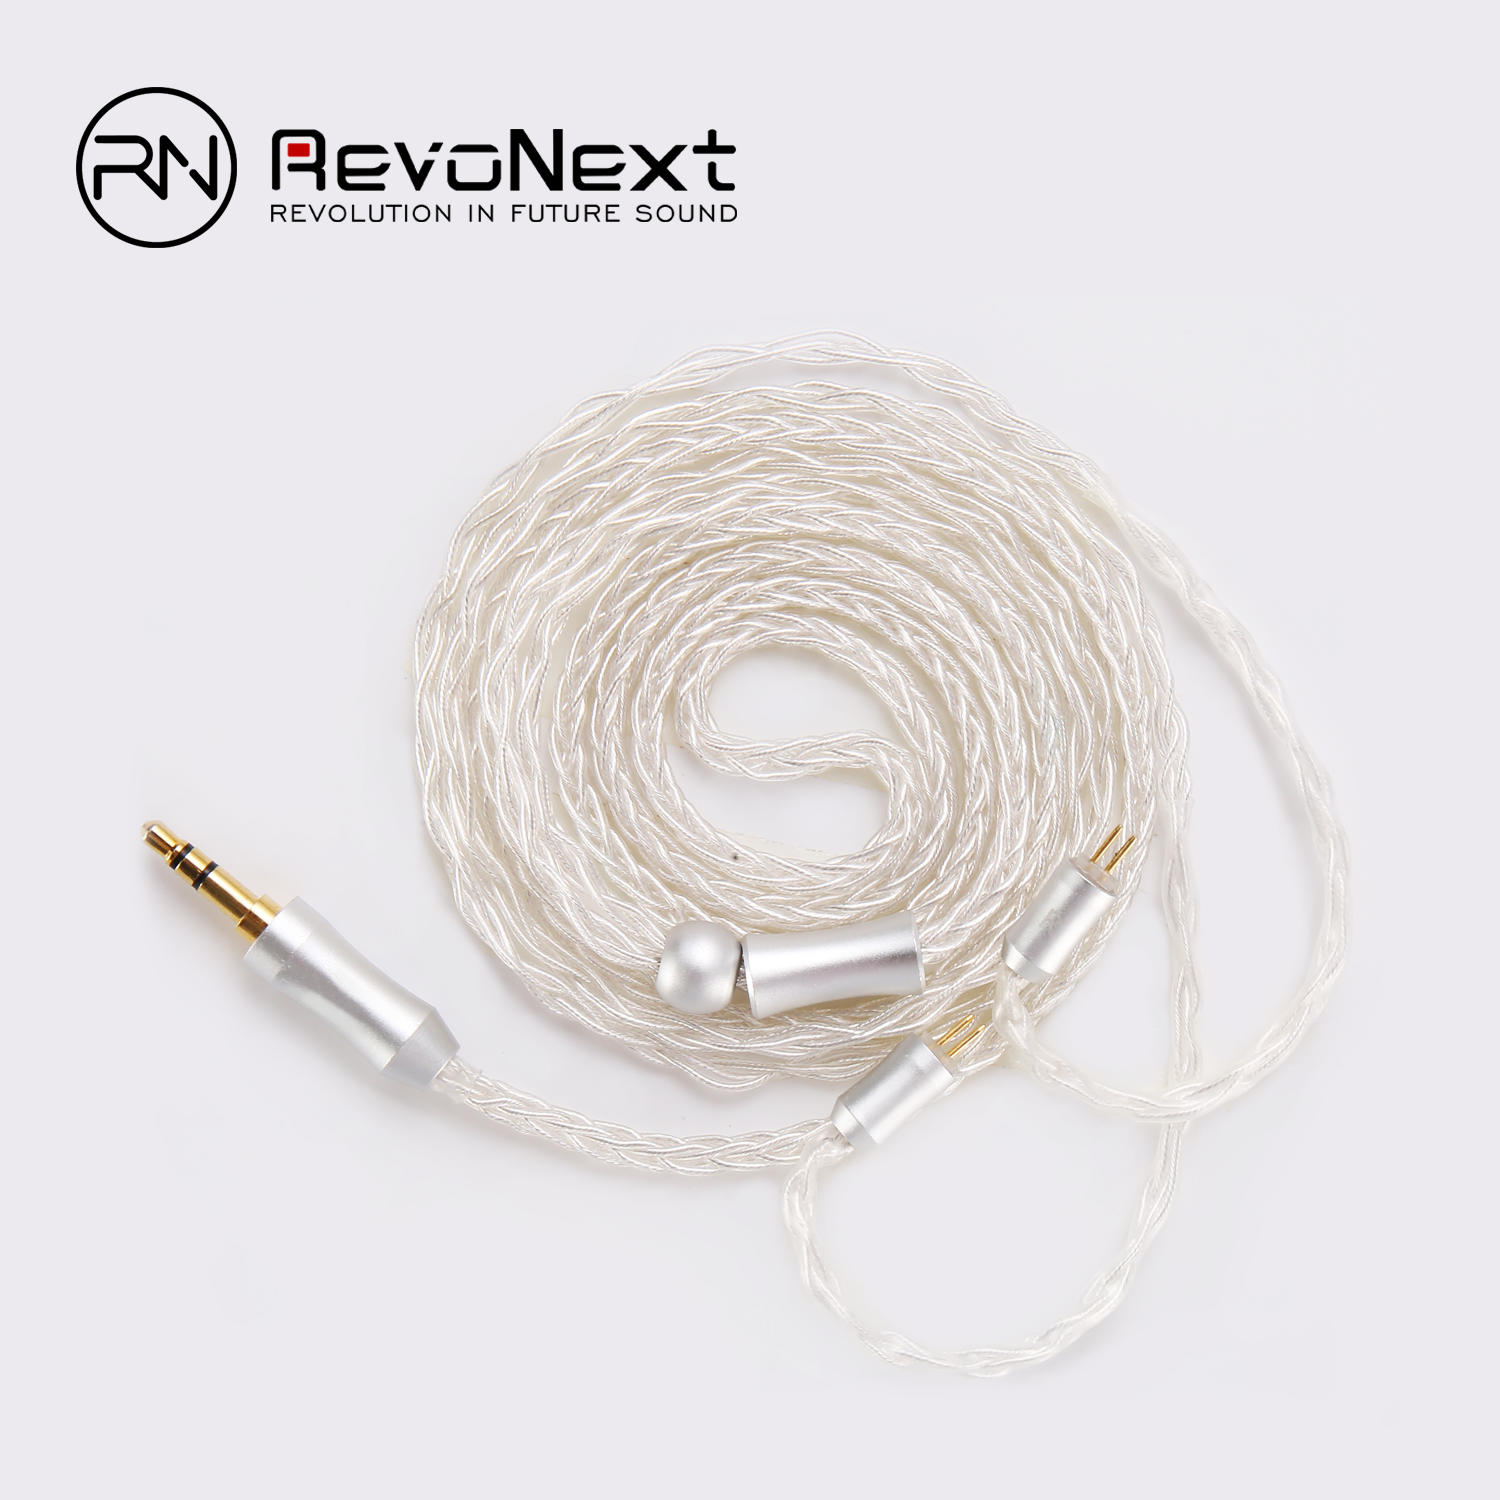 Silver Plated OCC Cable